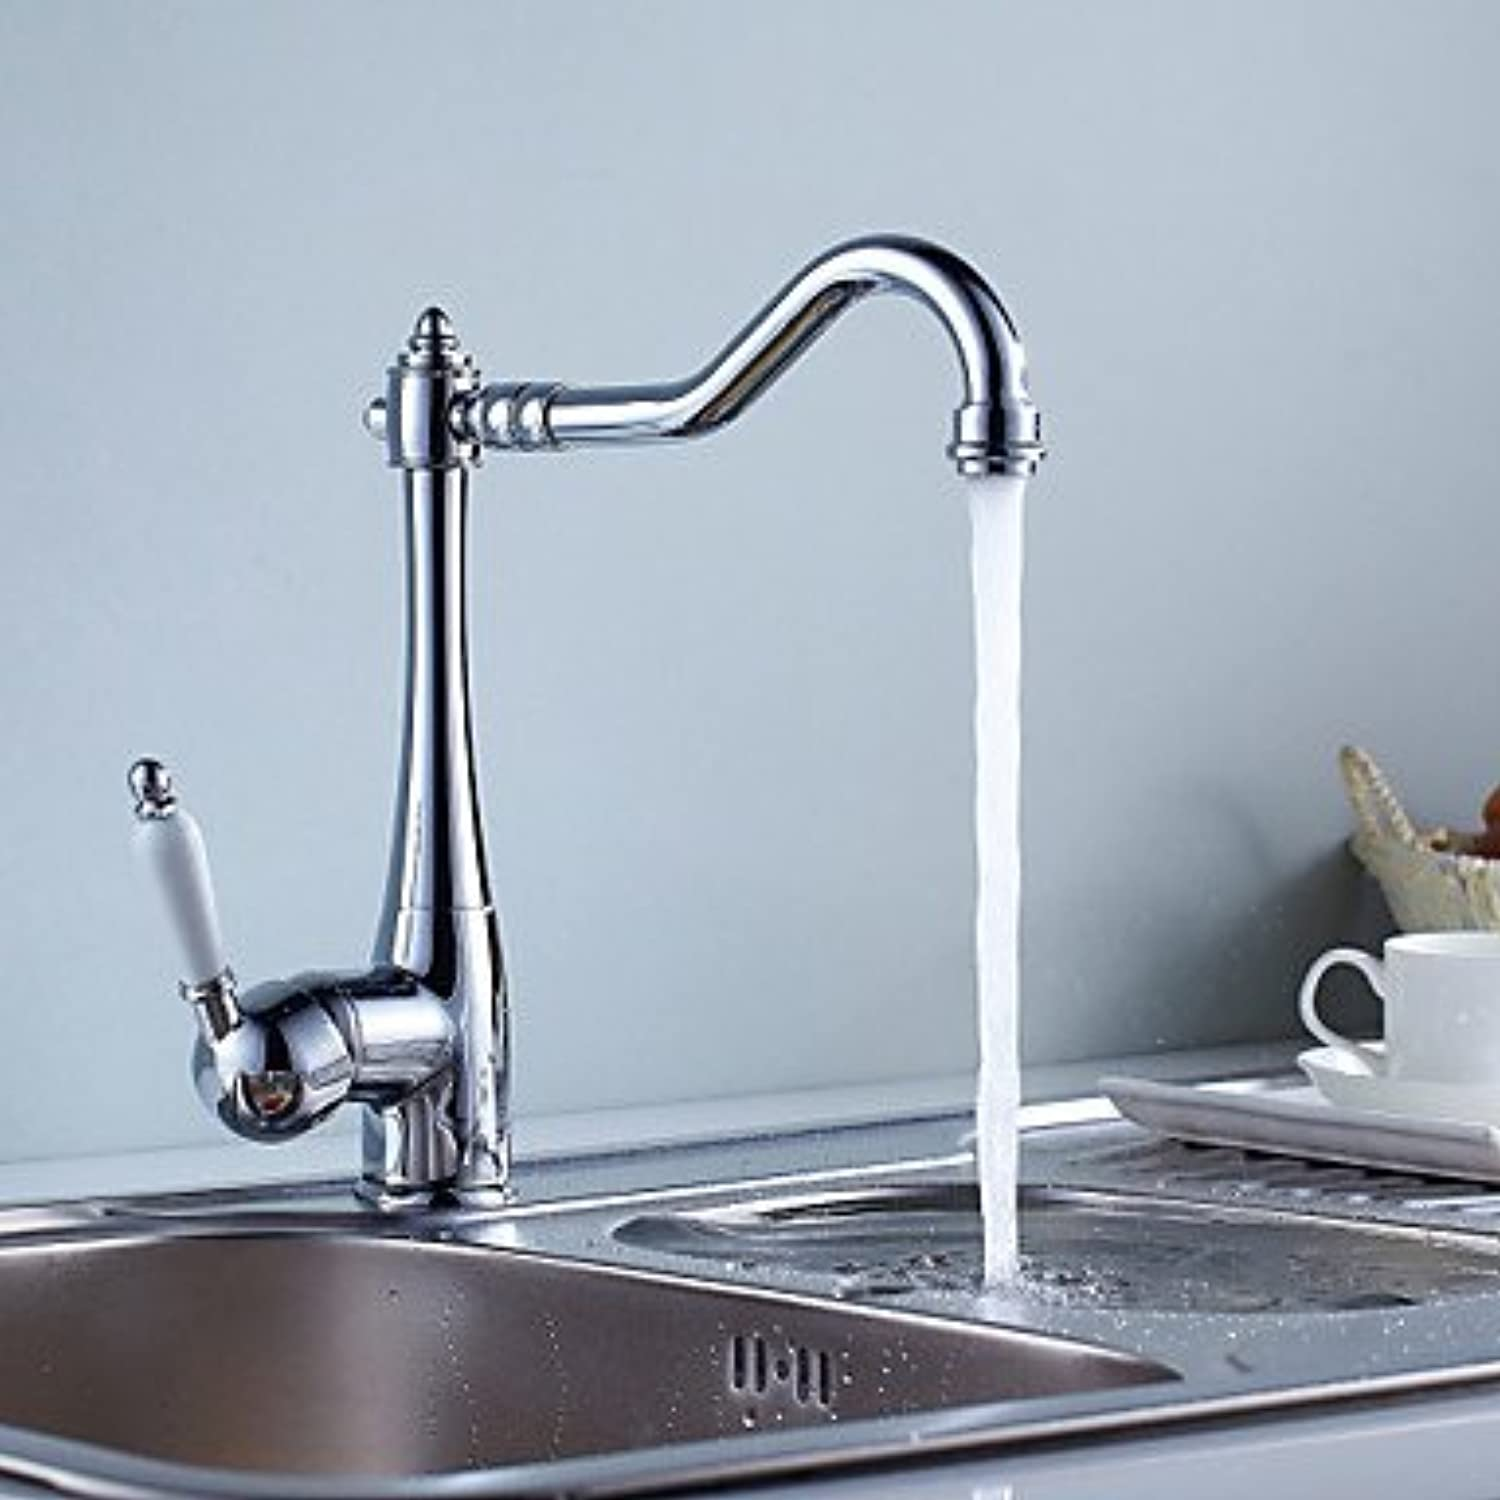 TSAR003 Contemporary Chrome Finish Single Handle Kitchen Faucet